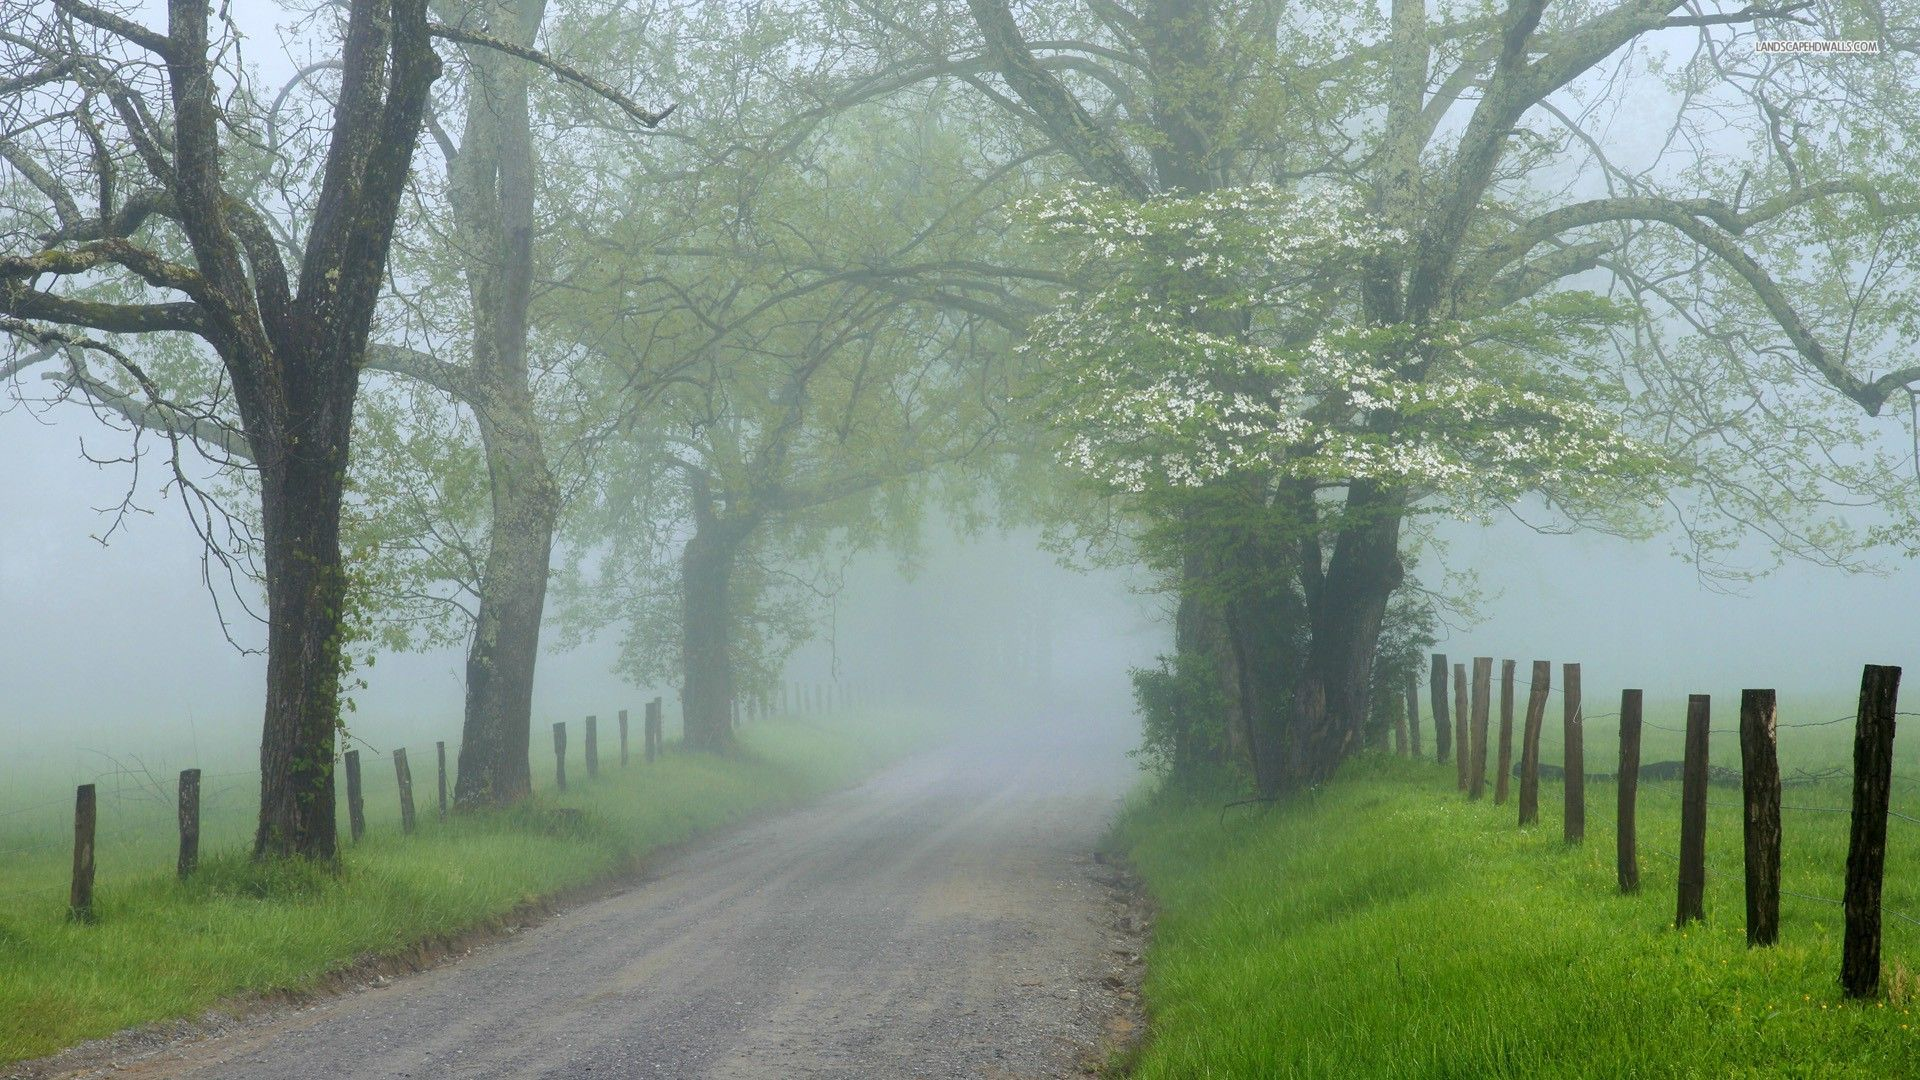 1920x1080 Foggy Road Trees Grass Fence Desktop PC And Mac